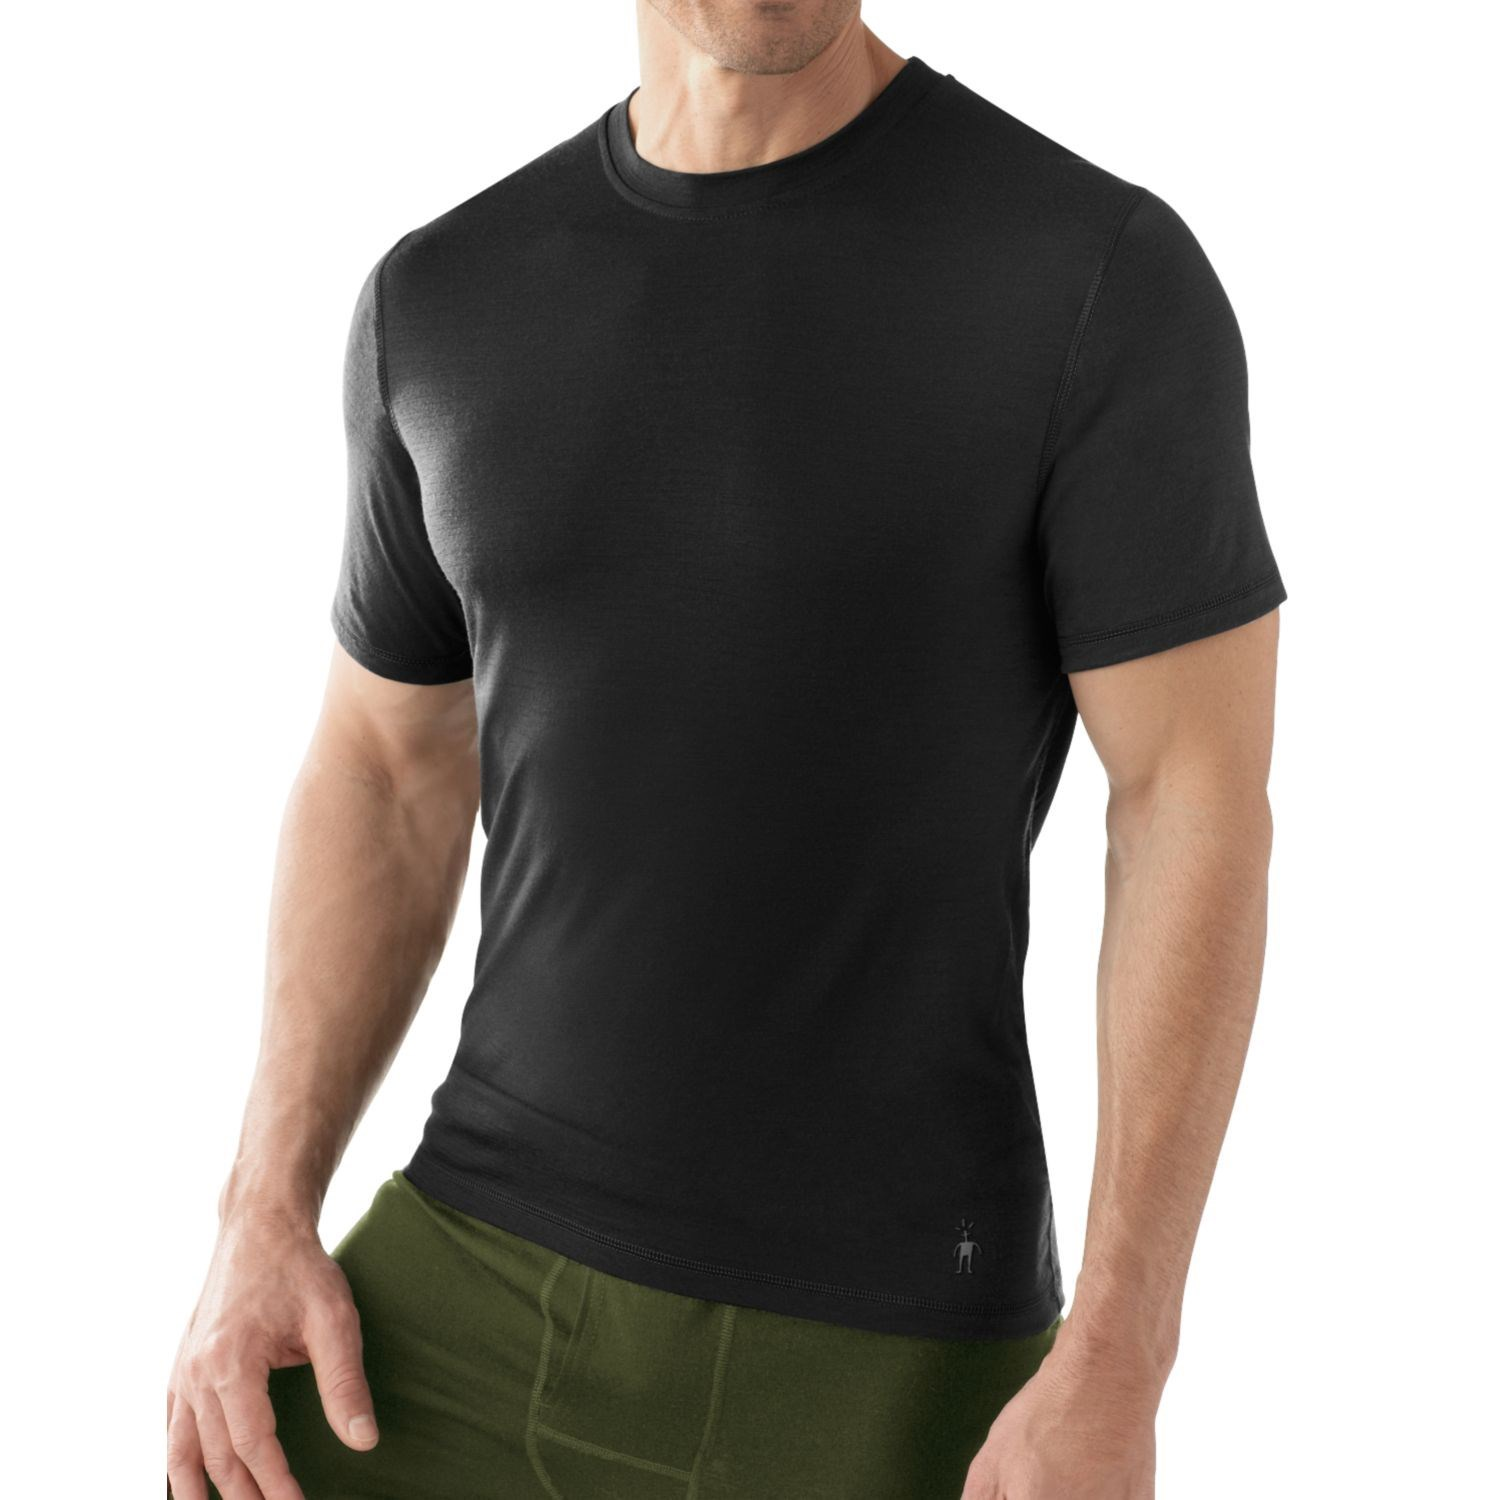 smartwool nts 150 microweight base layer t shirt for men. Black Bedroom Furniture Sets. Home Design Ideas